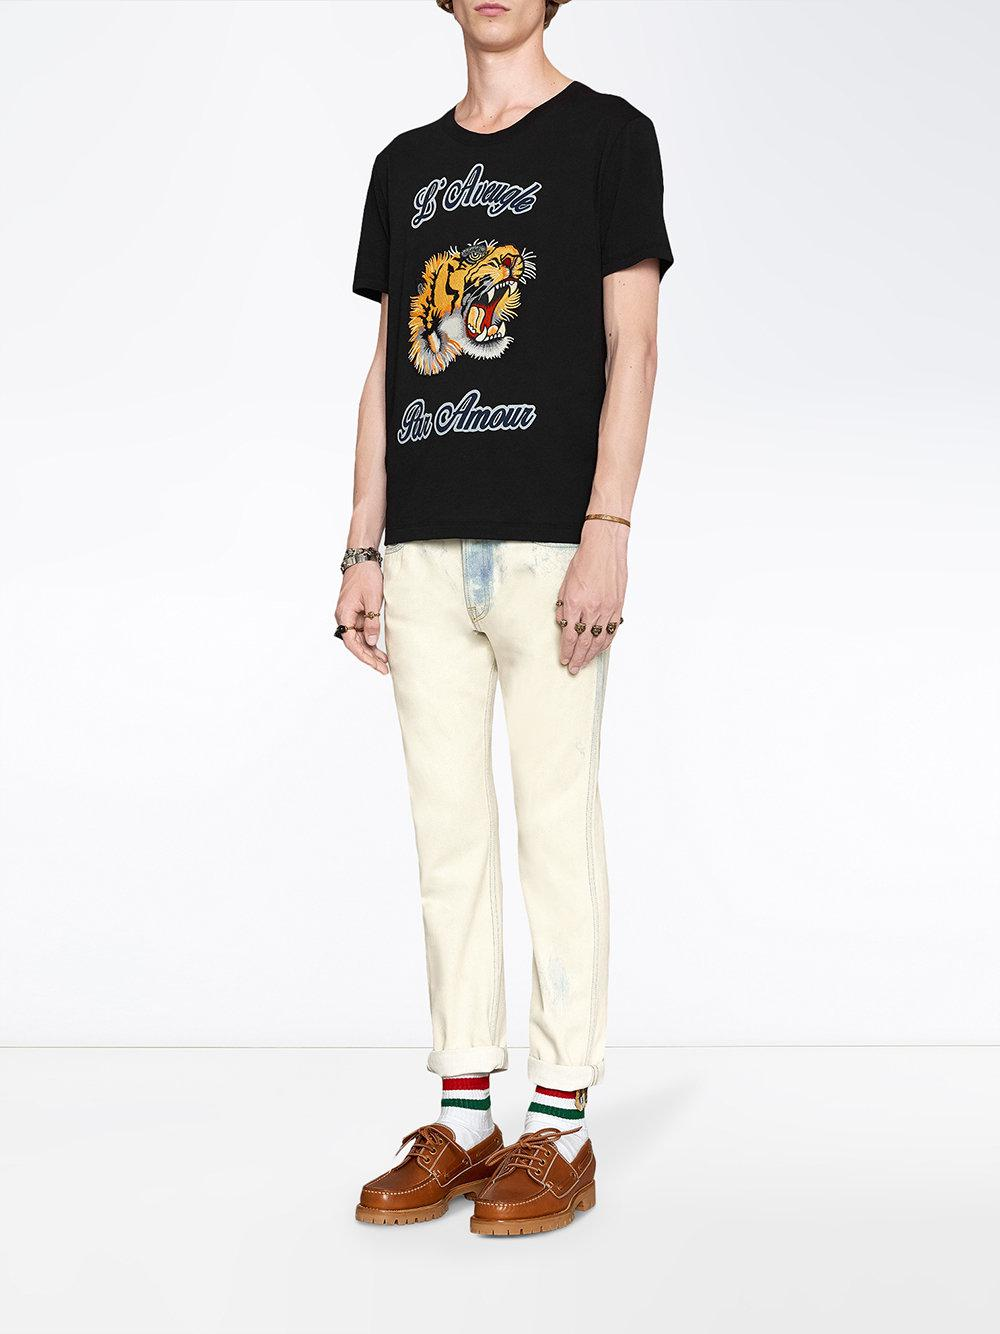 6fb8c81222d2a Gucci Embellished Cotton-jersey T-shirt in Black for Men - Save ...